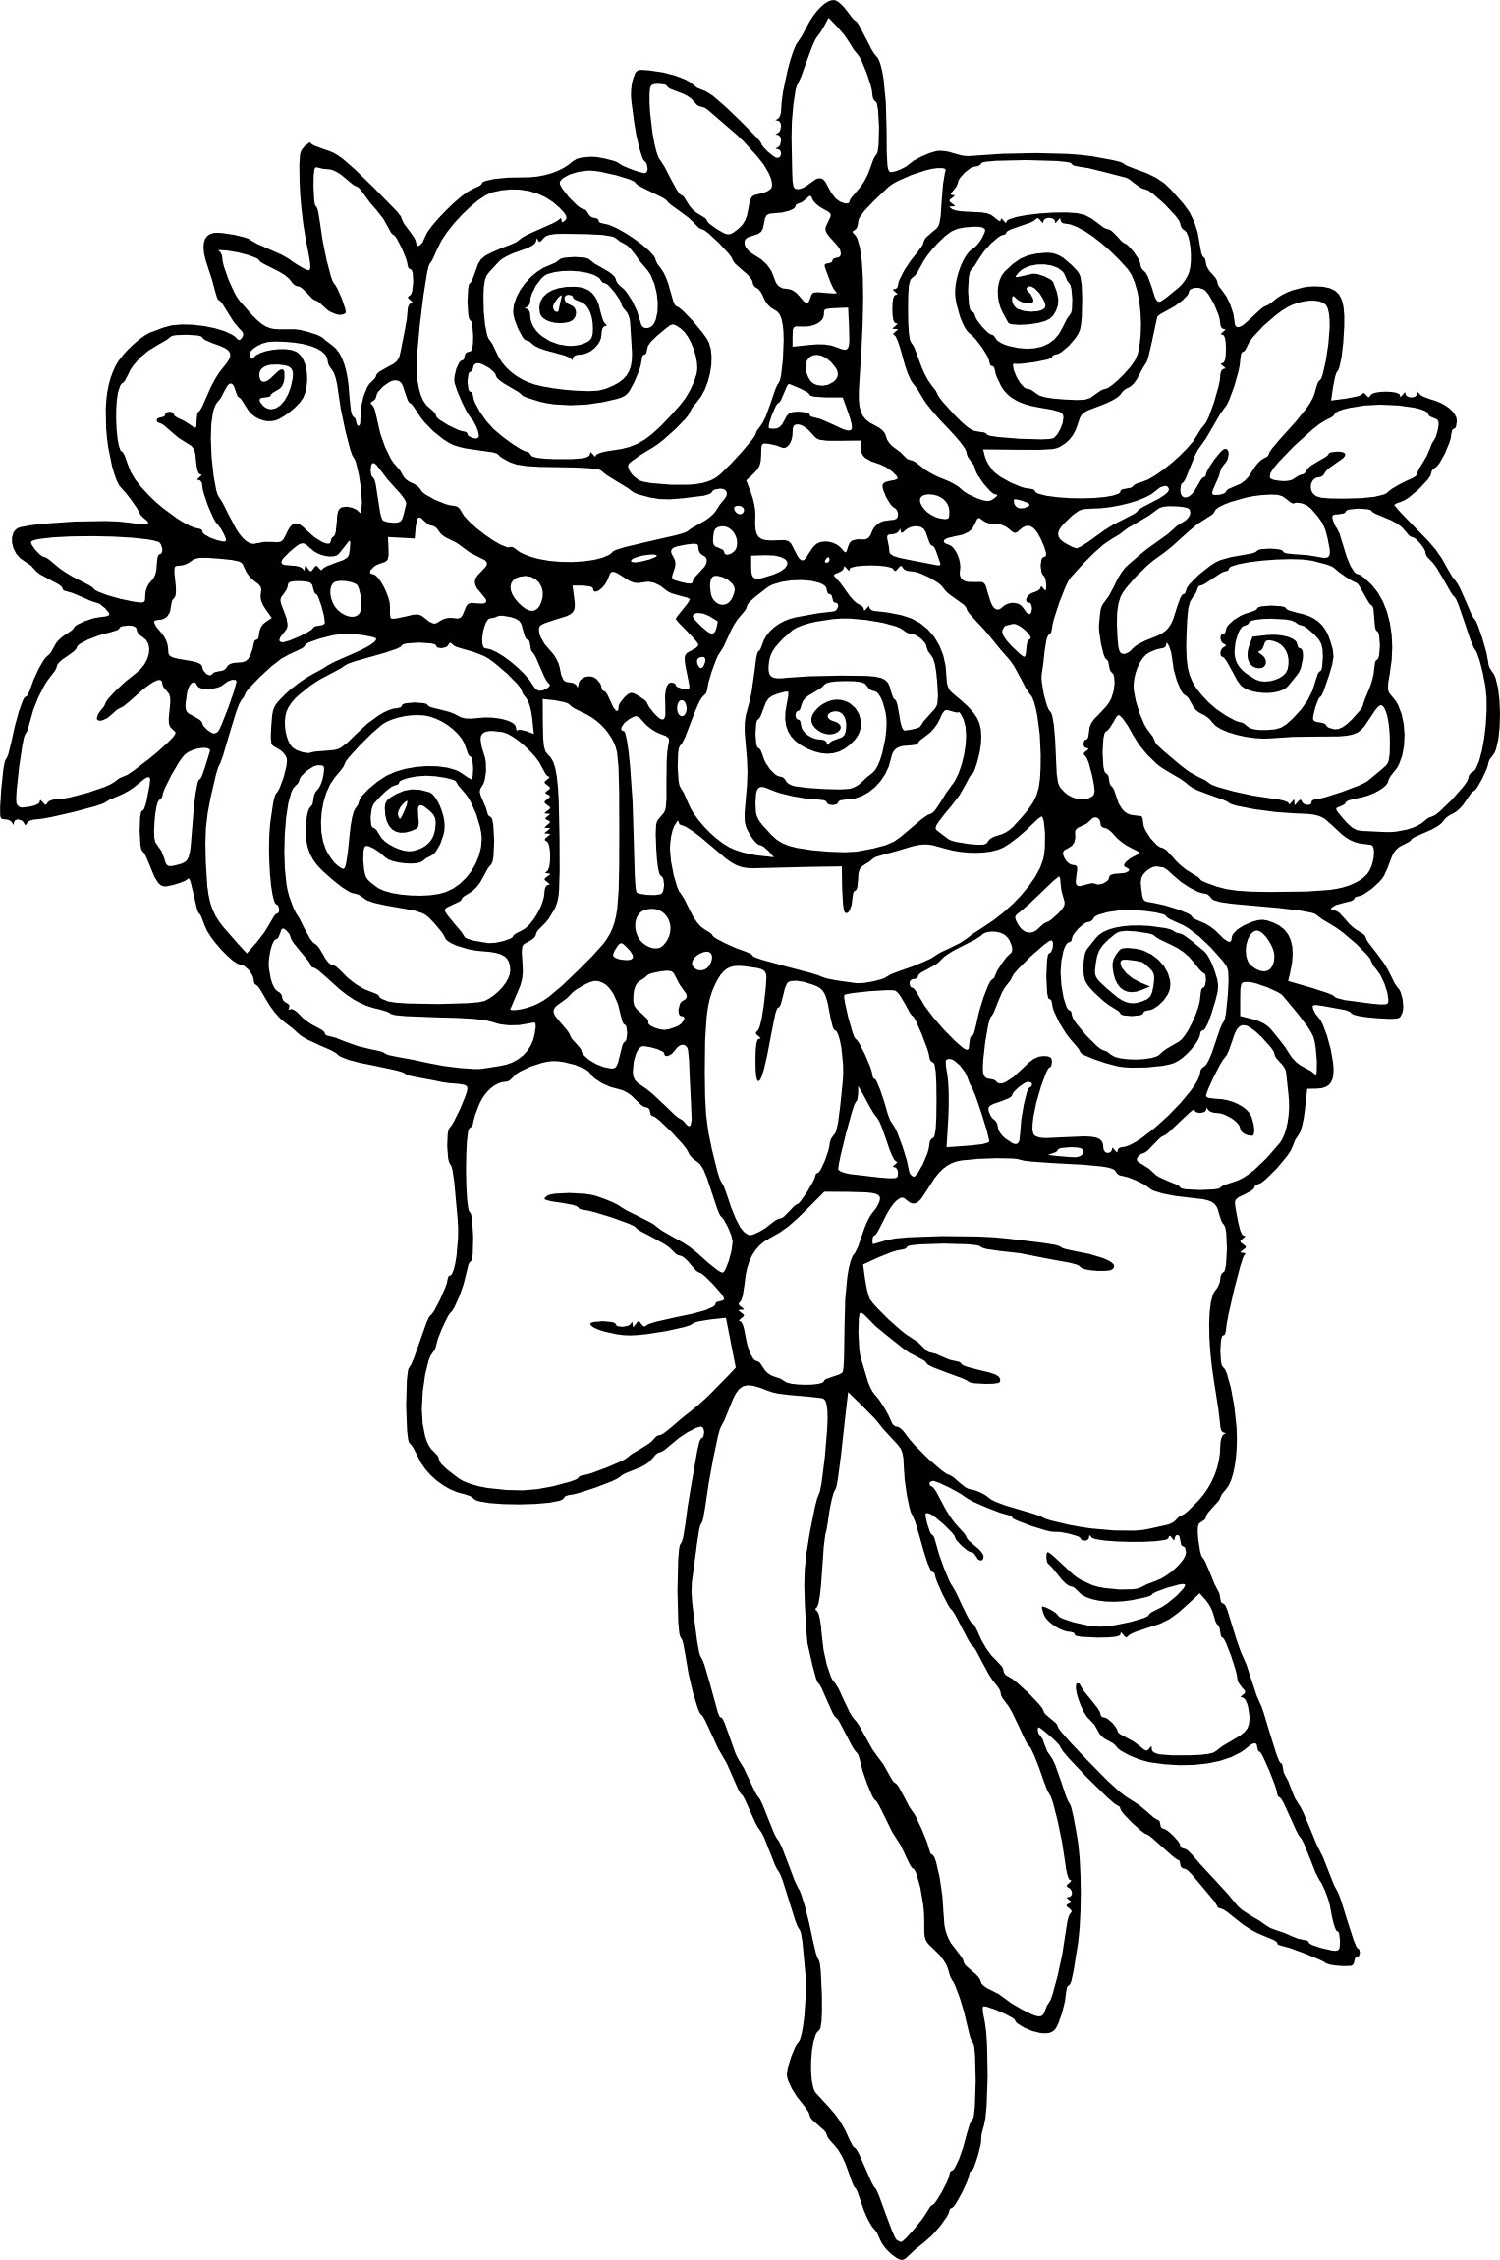 coloring sheet rose rose coloring pages download and print rose coloring pages coloring rose sheet